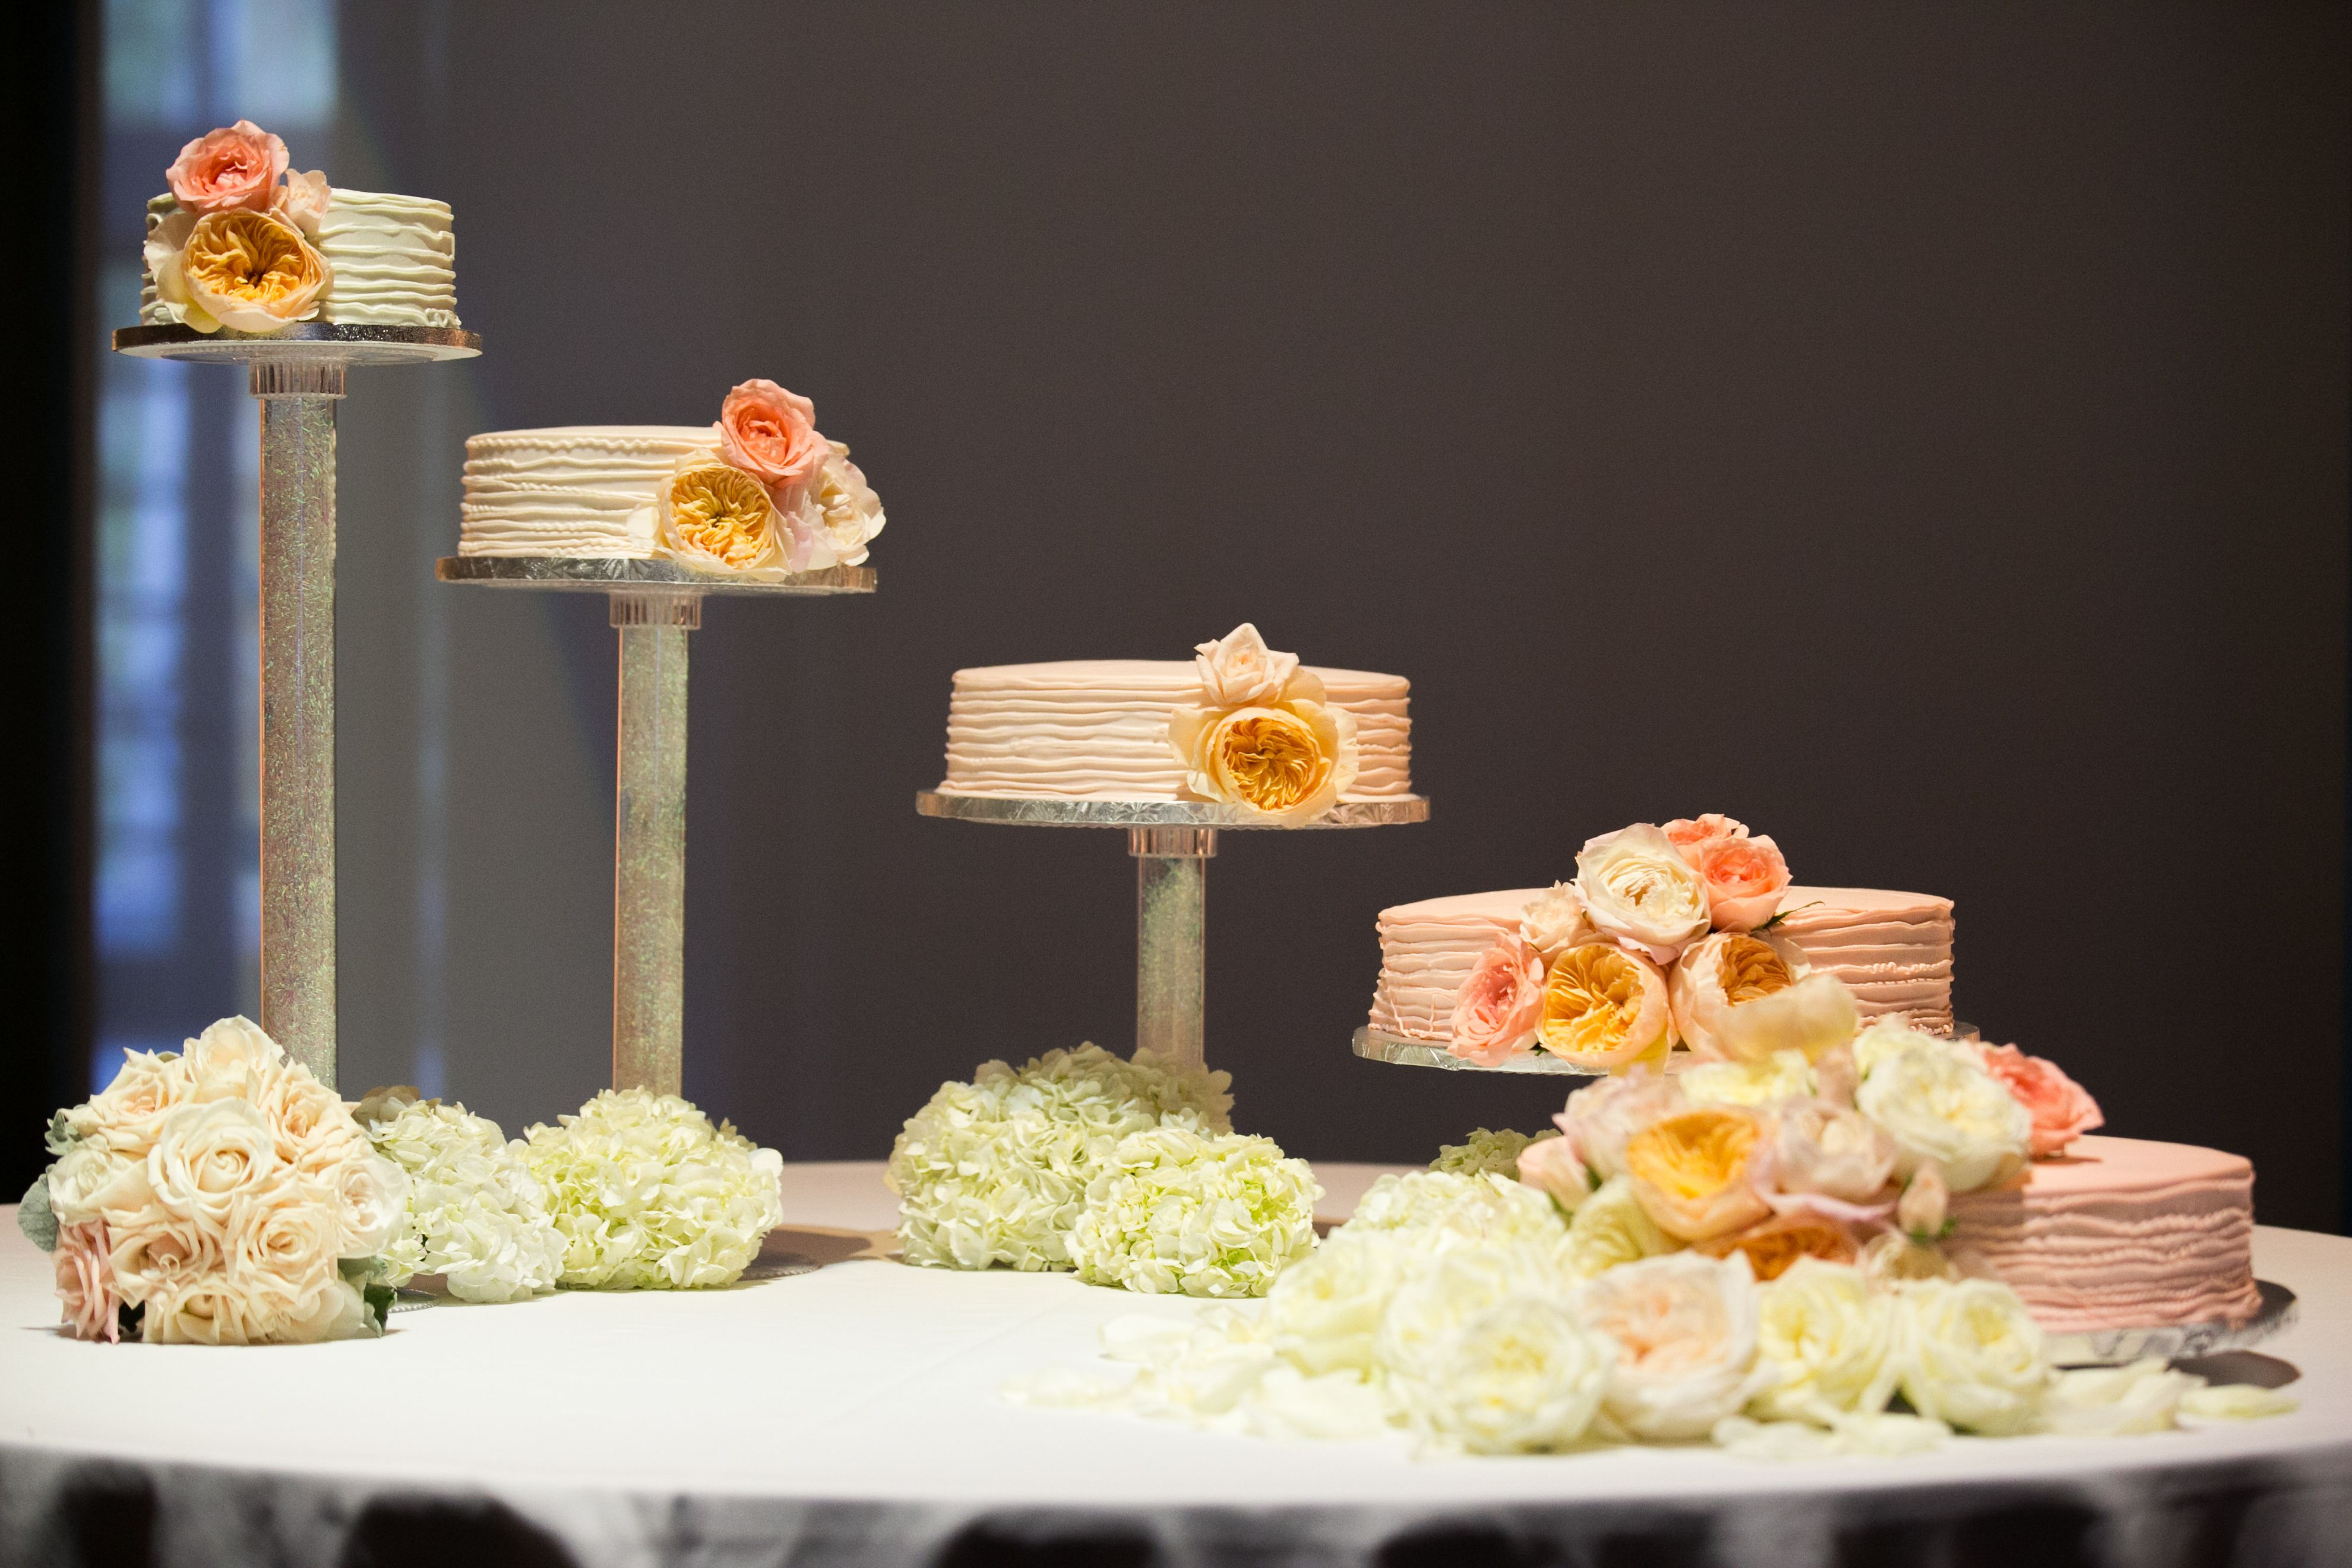 Beautiful 5level wedding cakes. Gradation of colors from